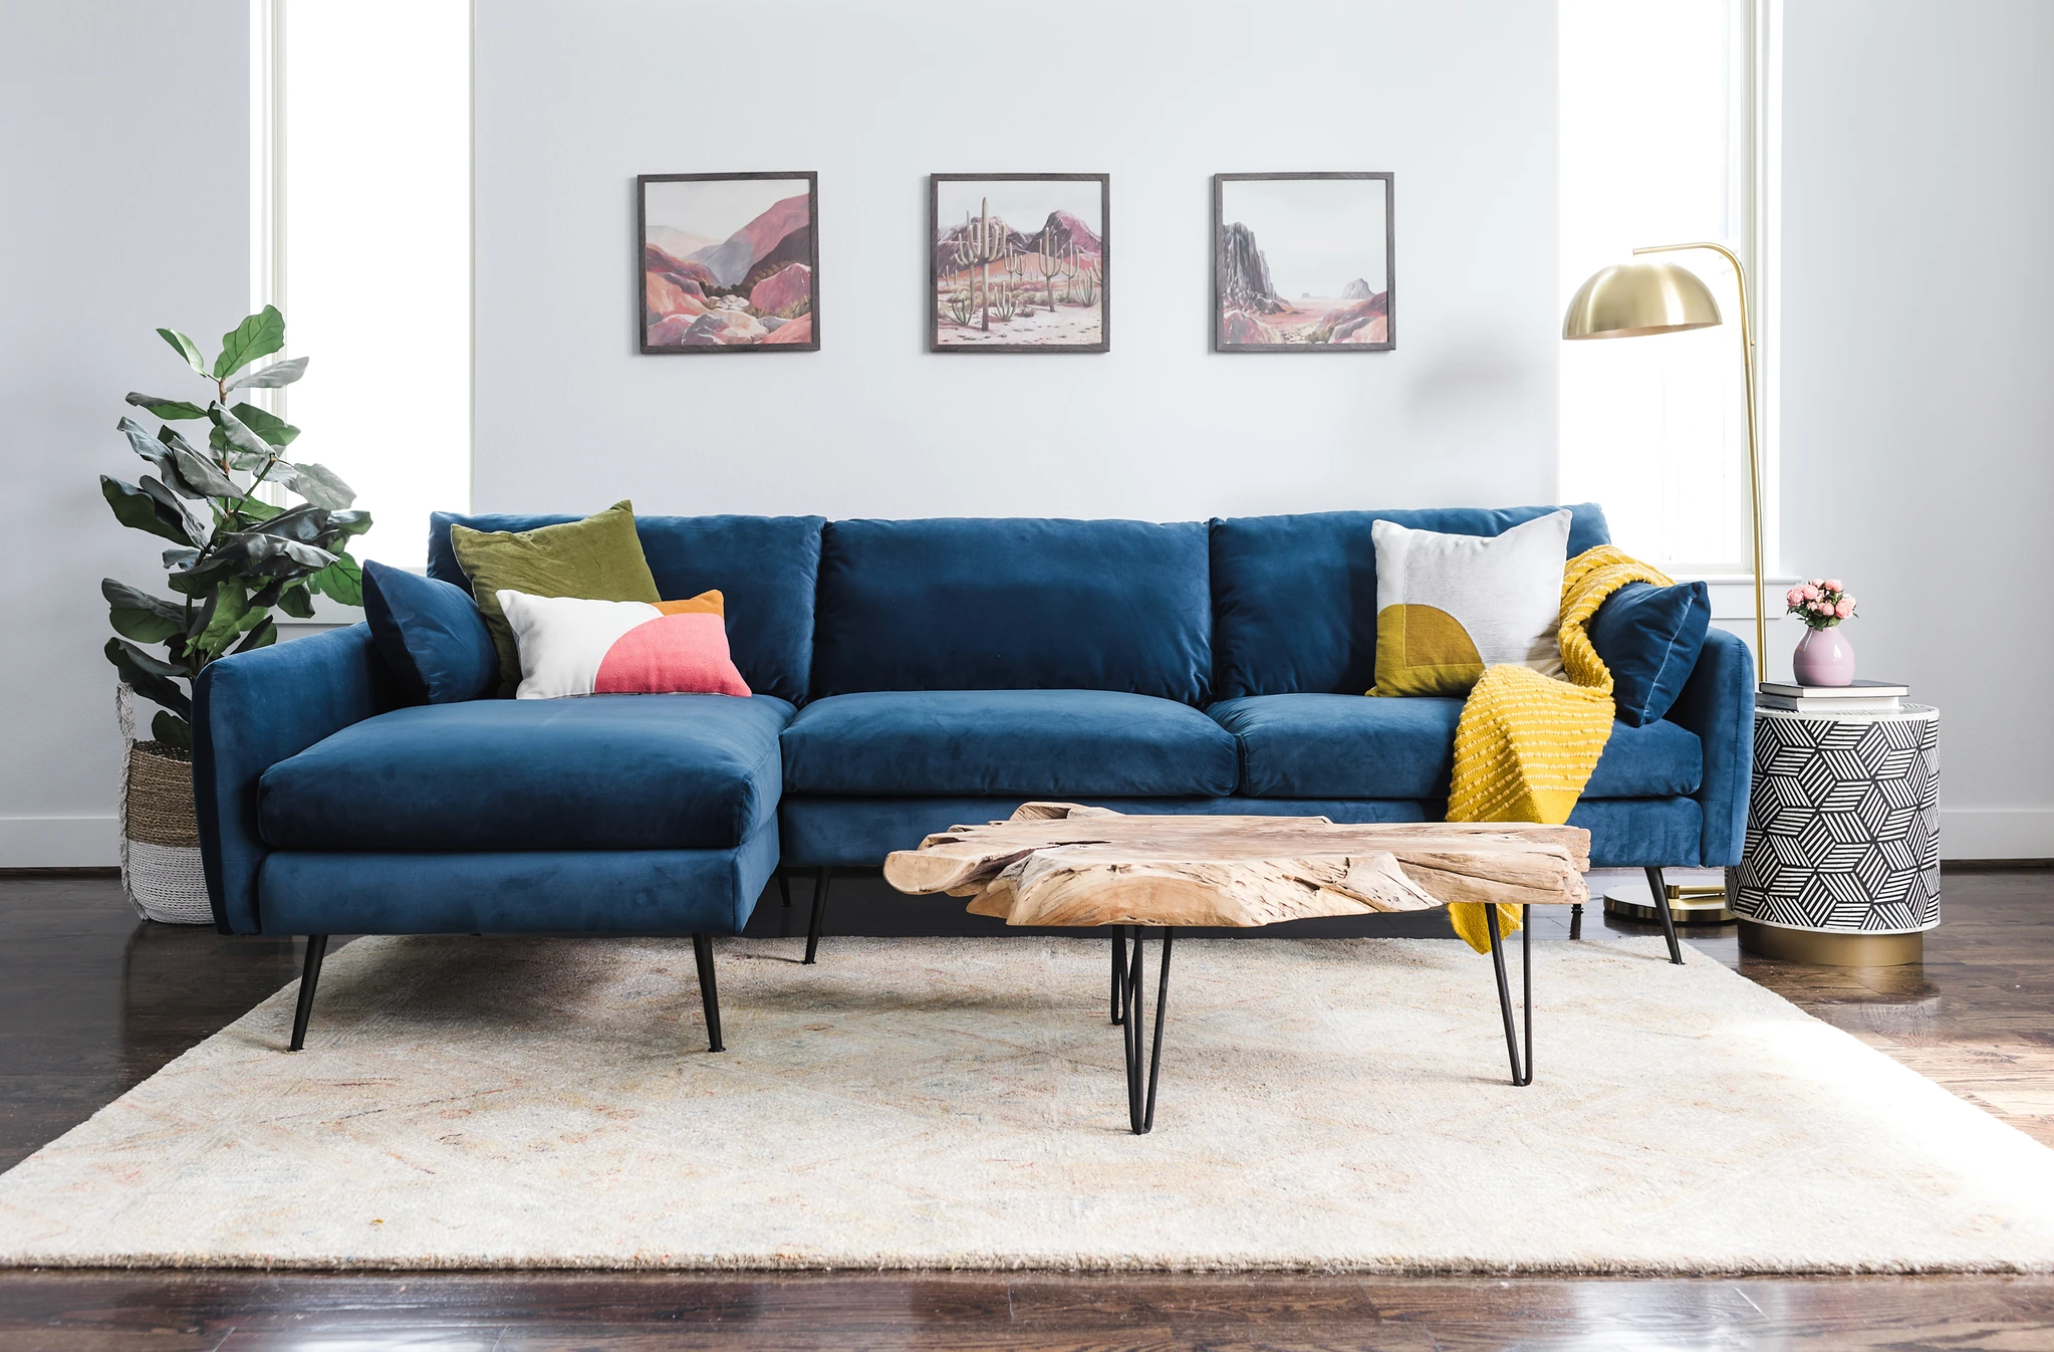 The albany park sectional in navy blue velvet is in a living room